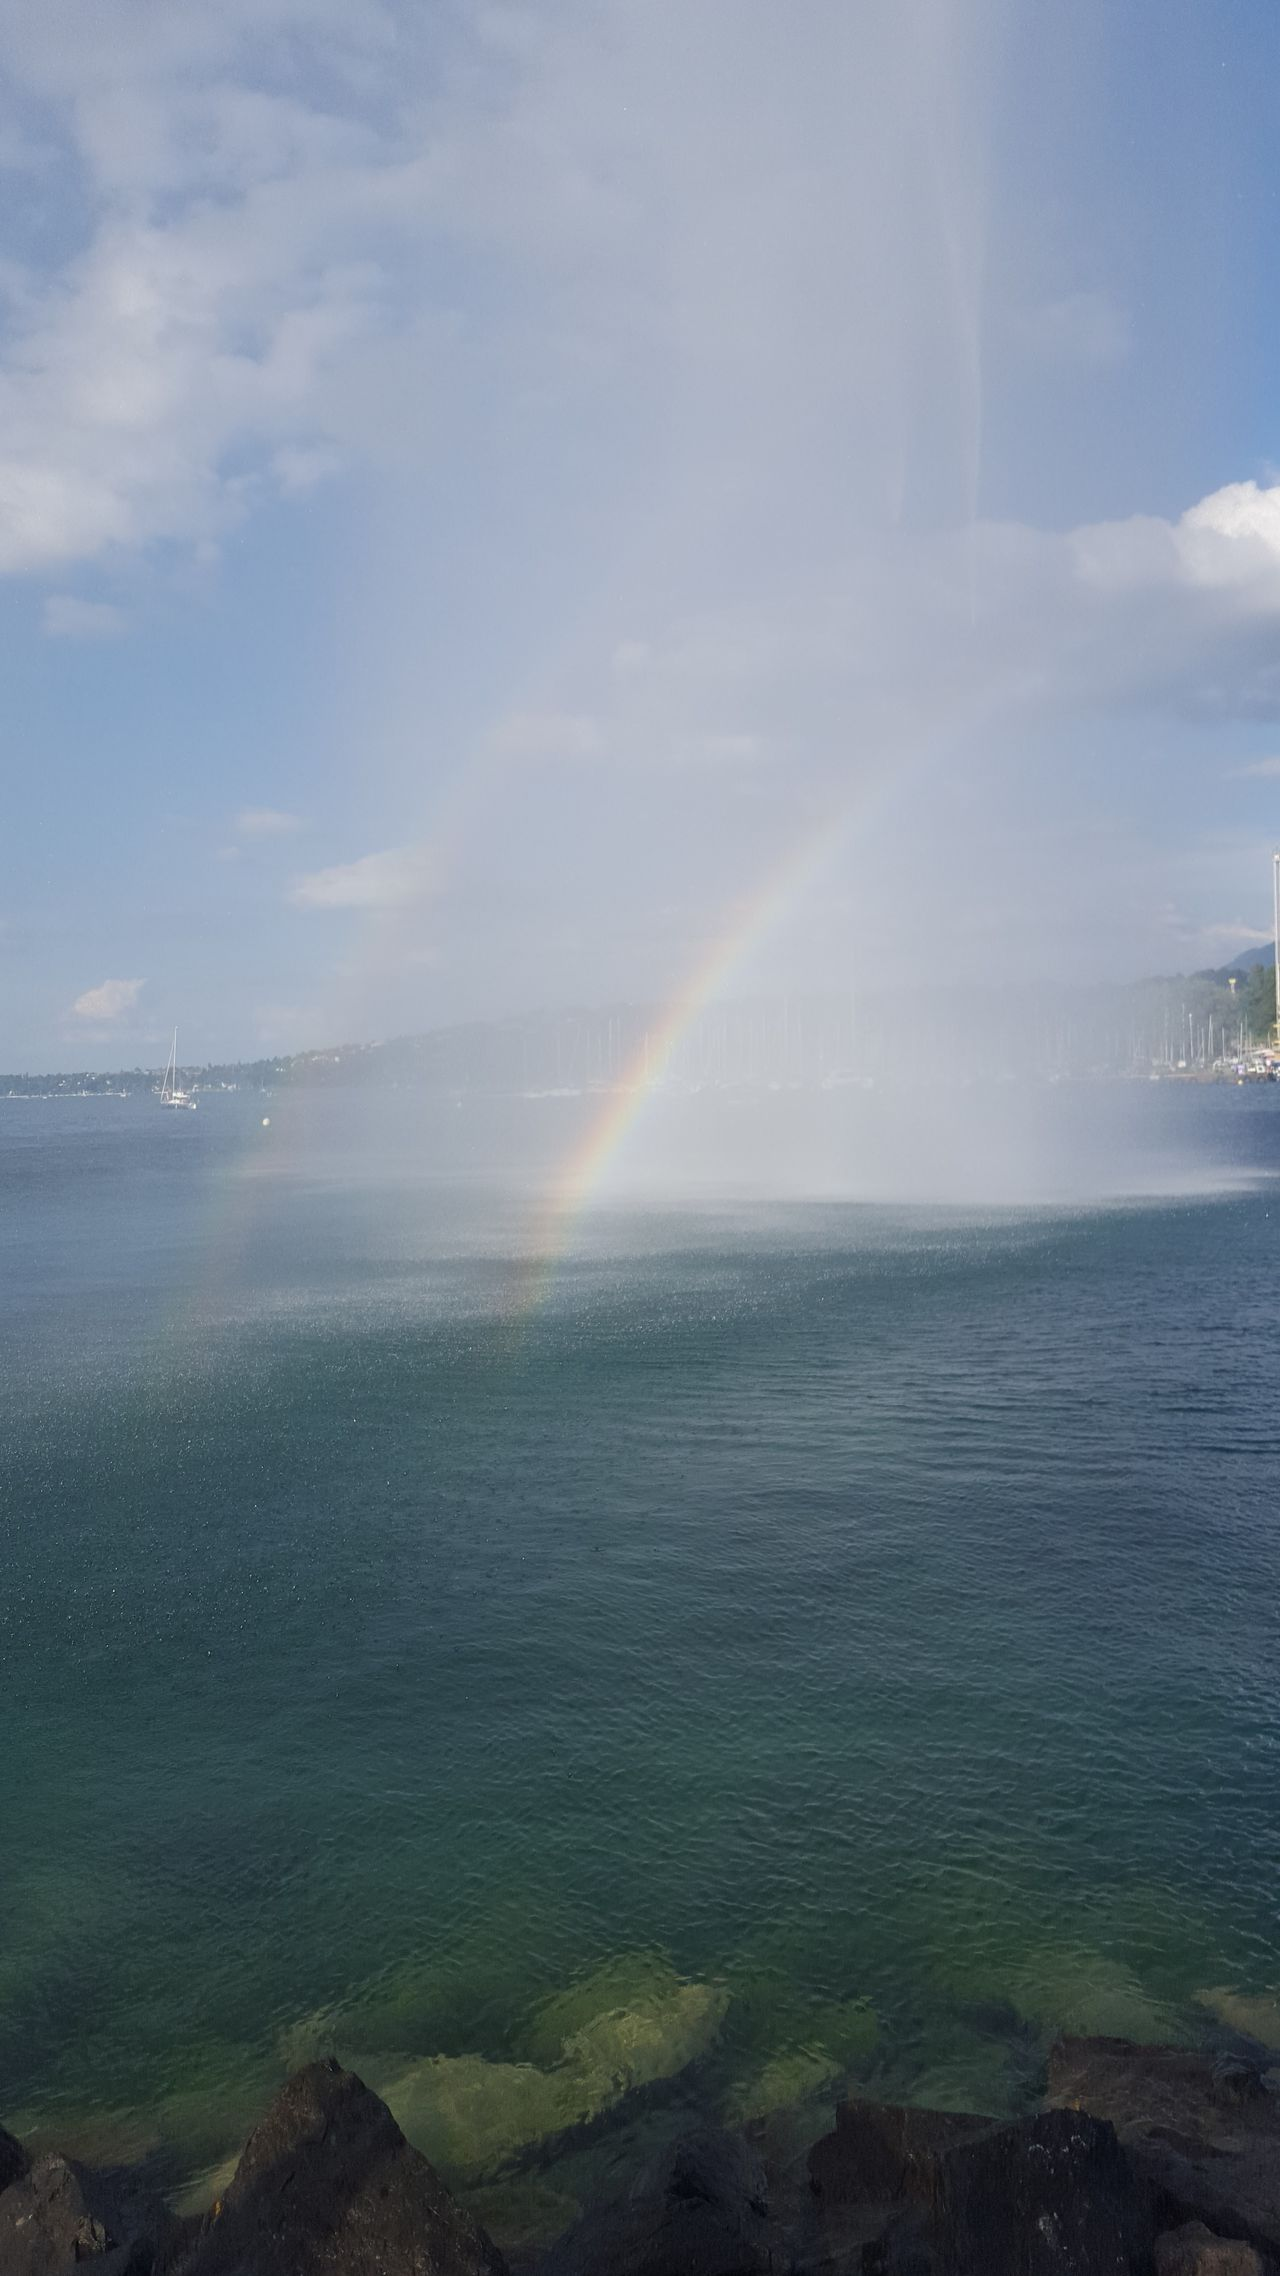 Water Beauty In Nature Scenics Nature Sea Sky Outdoors Tranquility Horizon Over Water Sunbeam Cloud - Sky No People Day Grass Double Rainbow Waterfall Lac Léman Geneve Larcenciel